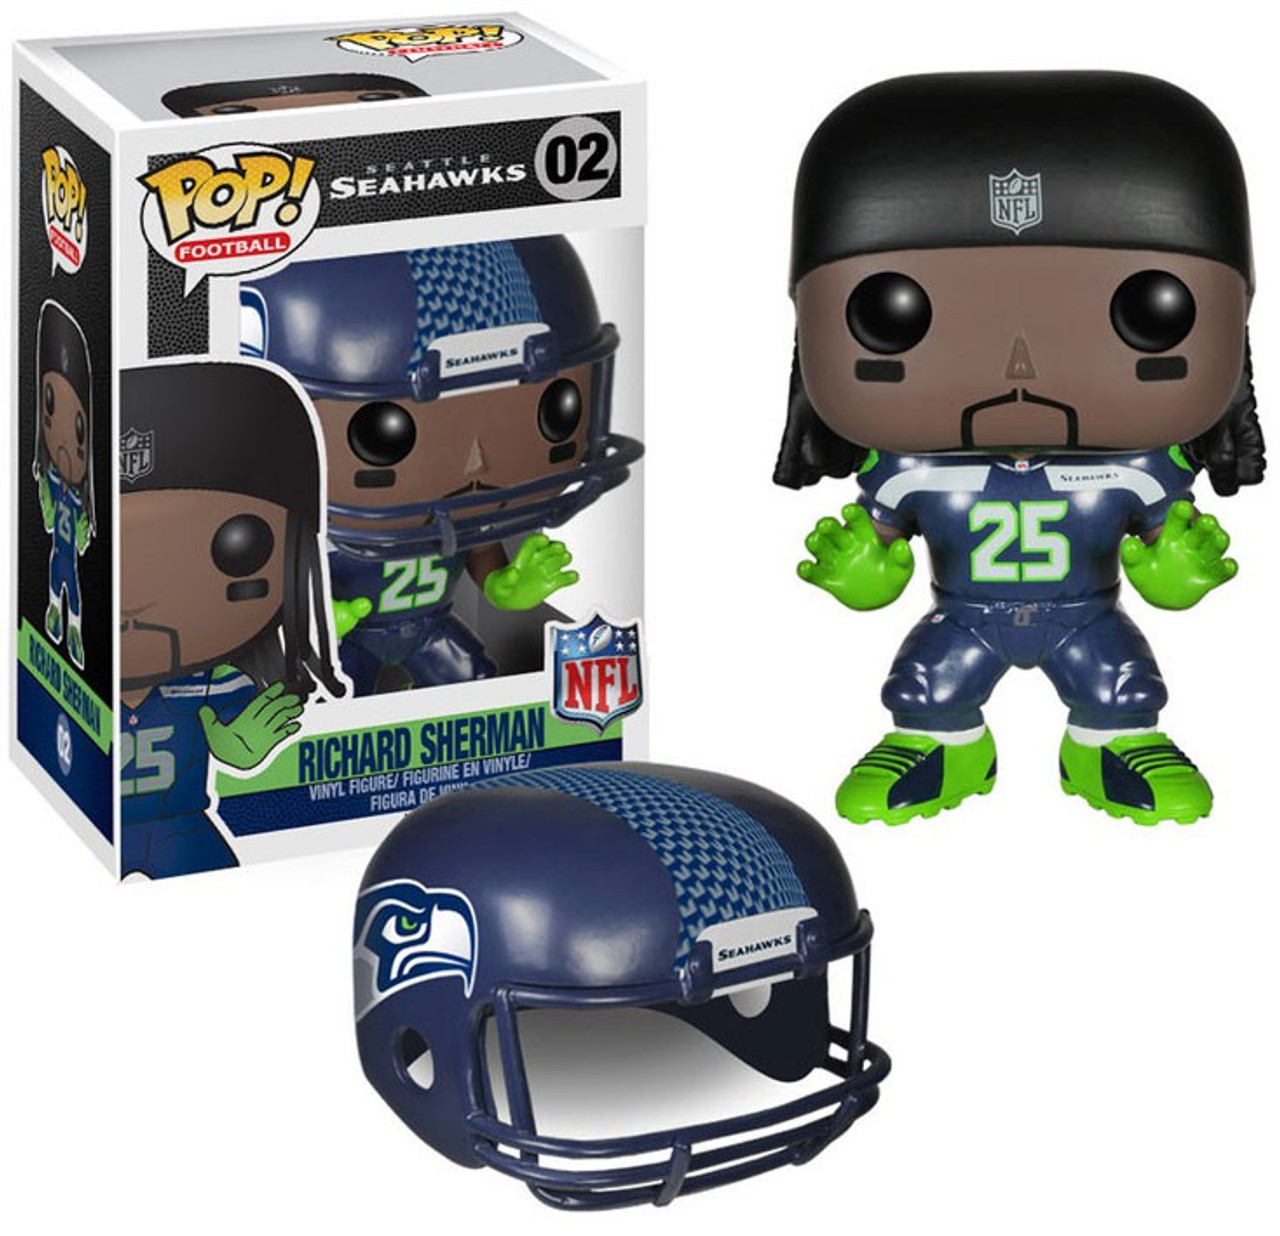 Seattle Seahawks Griffin Brothers Shaquill /& Shaquem 2 Pack Vinyl Figures Bundled with Pop Protector Pop NFL